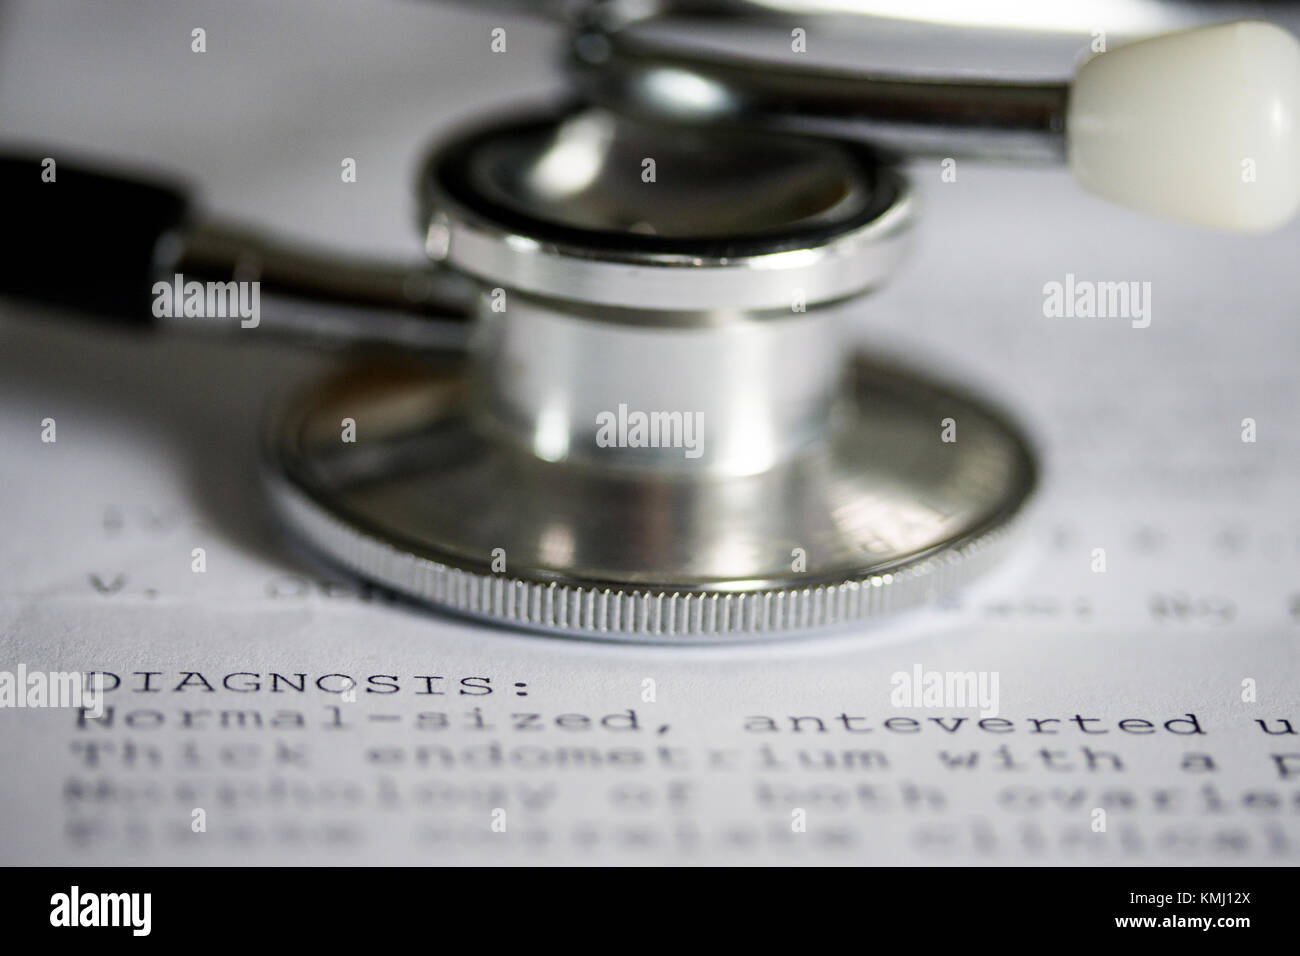 Concept Image of health featuring a printout with medical wording of Diagnosis - Stock Image